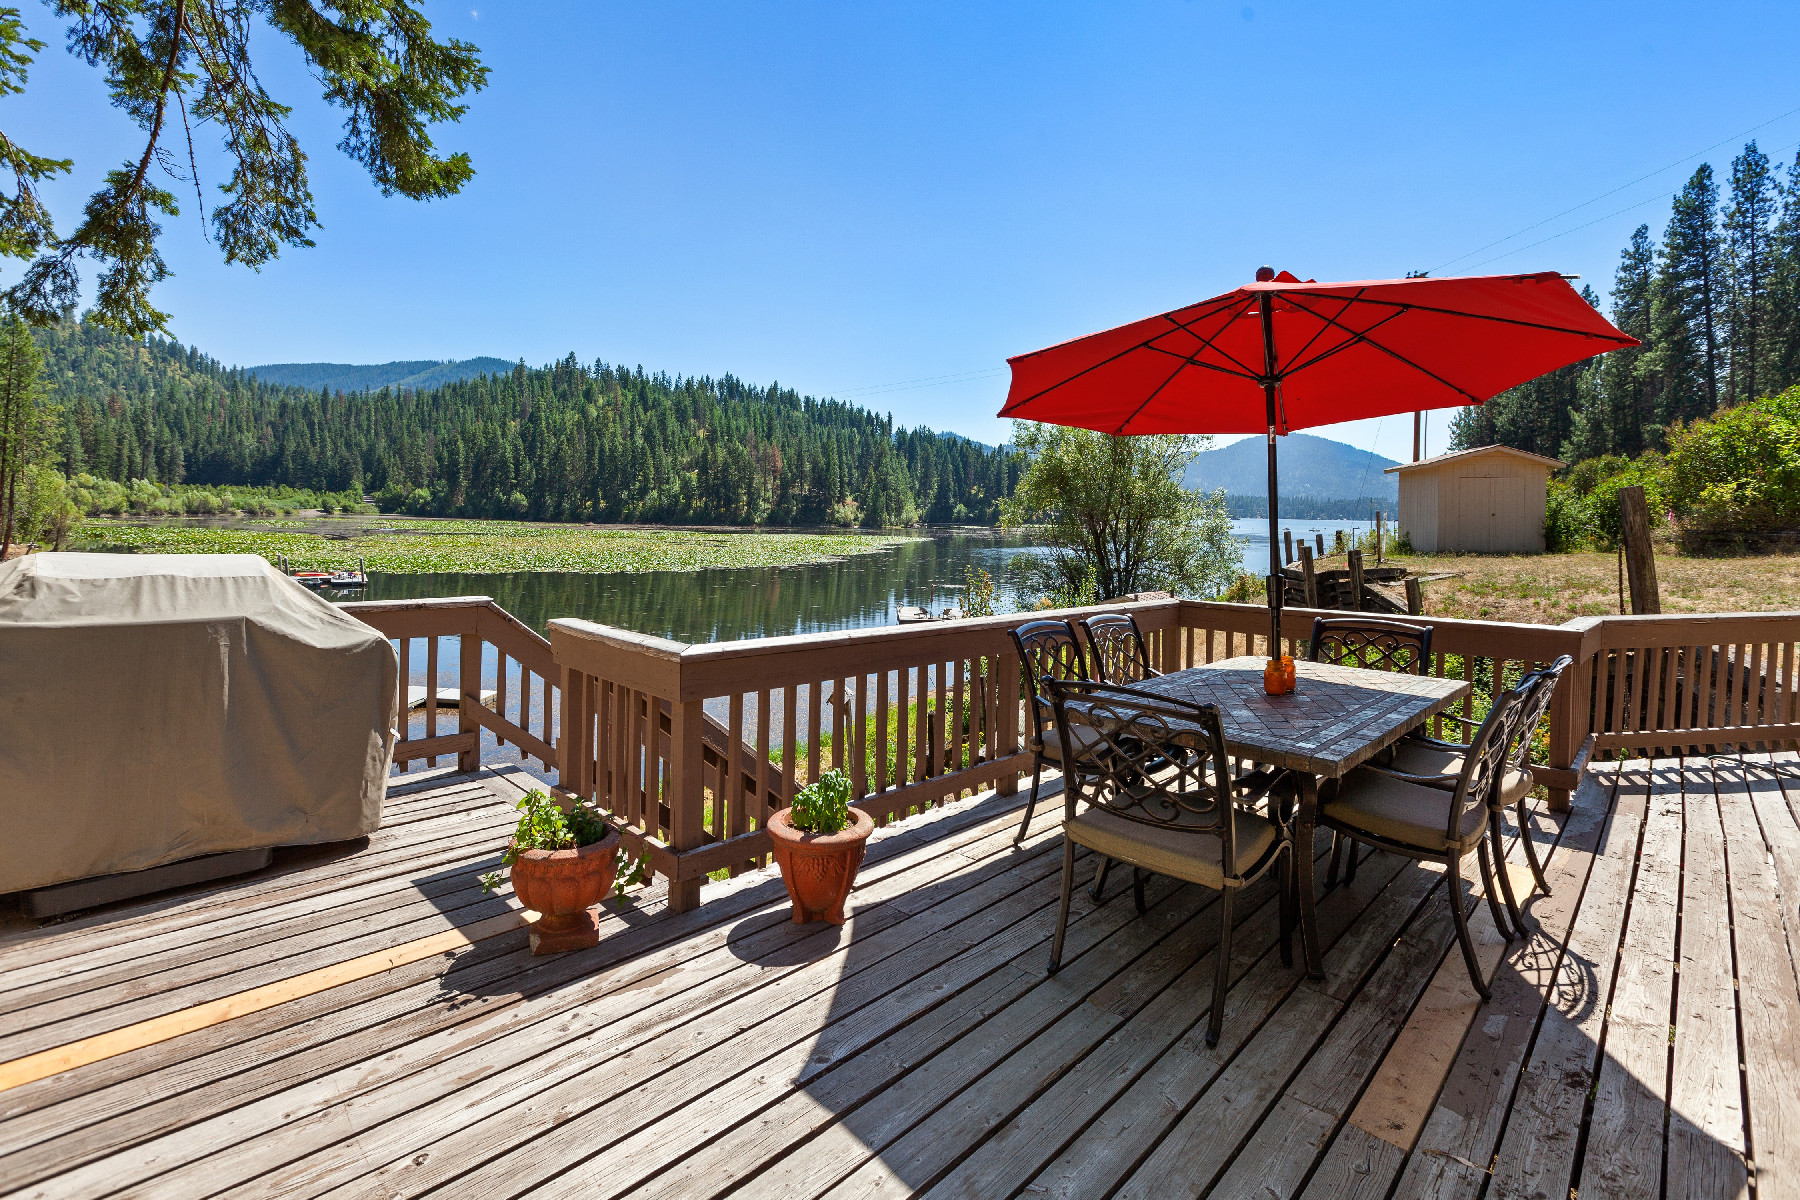 Single Family Homes のために 売買 アット Hayden Lake Adorable Cabin 19489 E Hayden Lake Rd, Hayden, アイダホ 83835 アメリカ